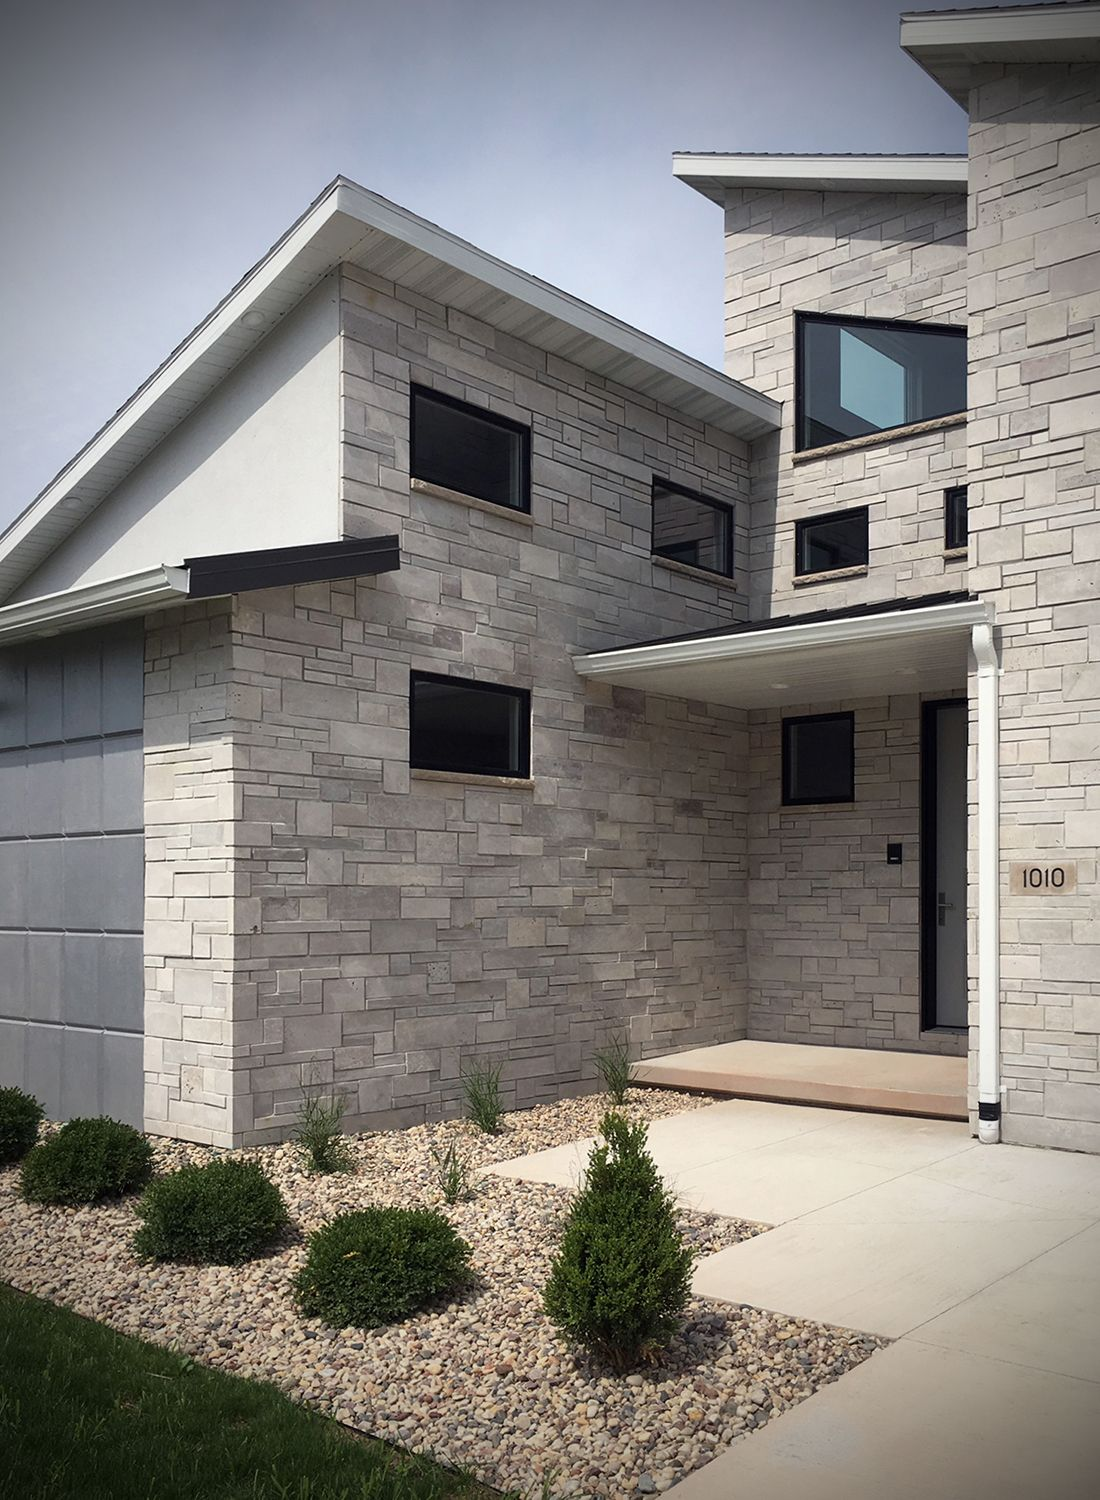 49 Most Popular Modern Dream House Exterior Design Ideas 3 In 2020: Tailored Blend Modern Home Exterior Stone Veneer - Thin Stone Masonry In 2020